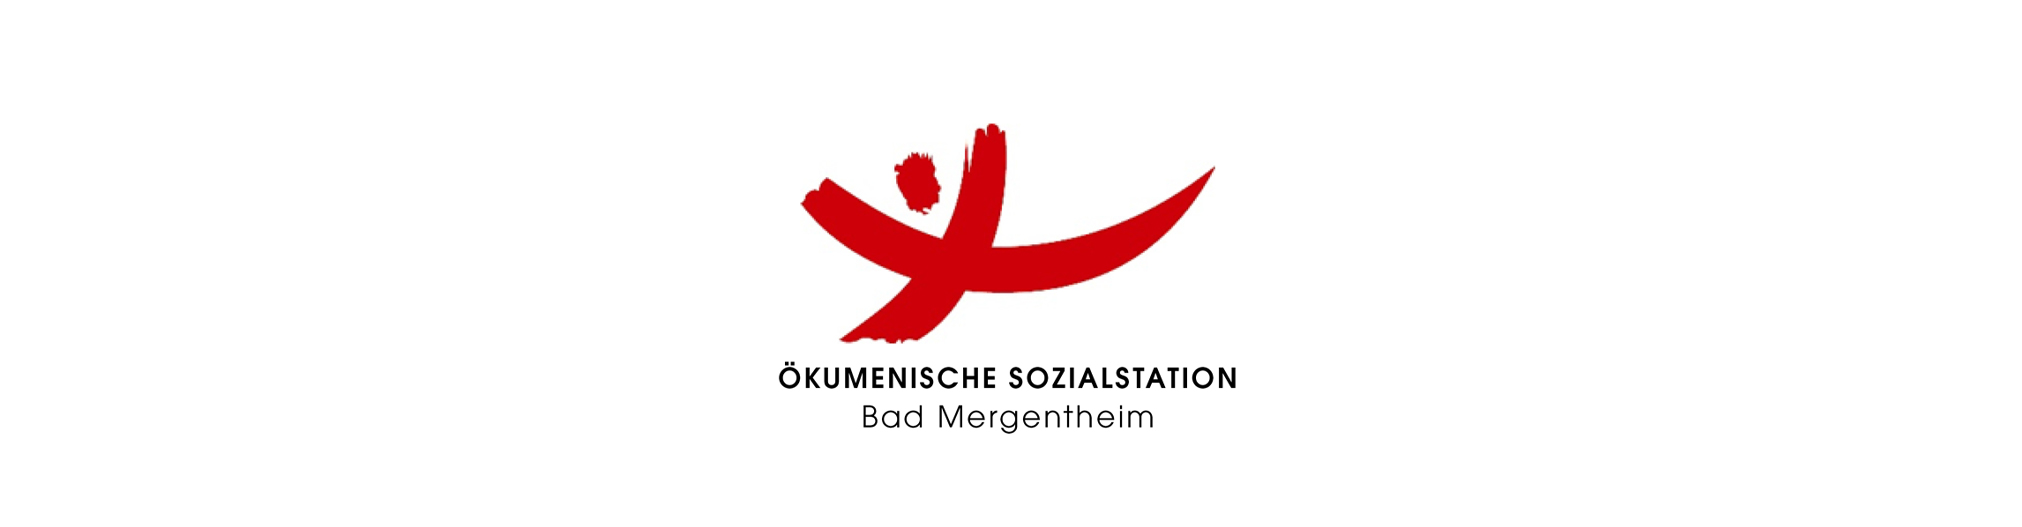 Ökumenische Sozialstation Bad Mergentheim